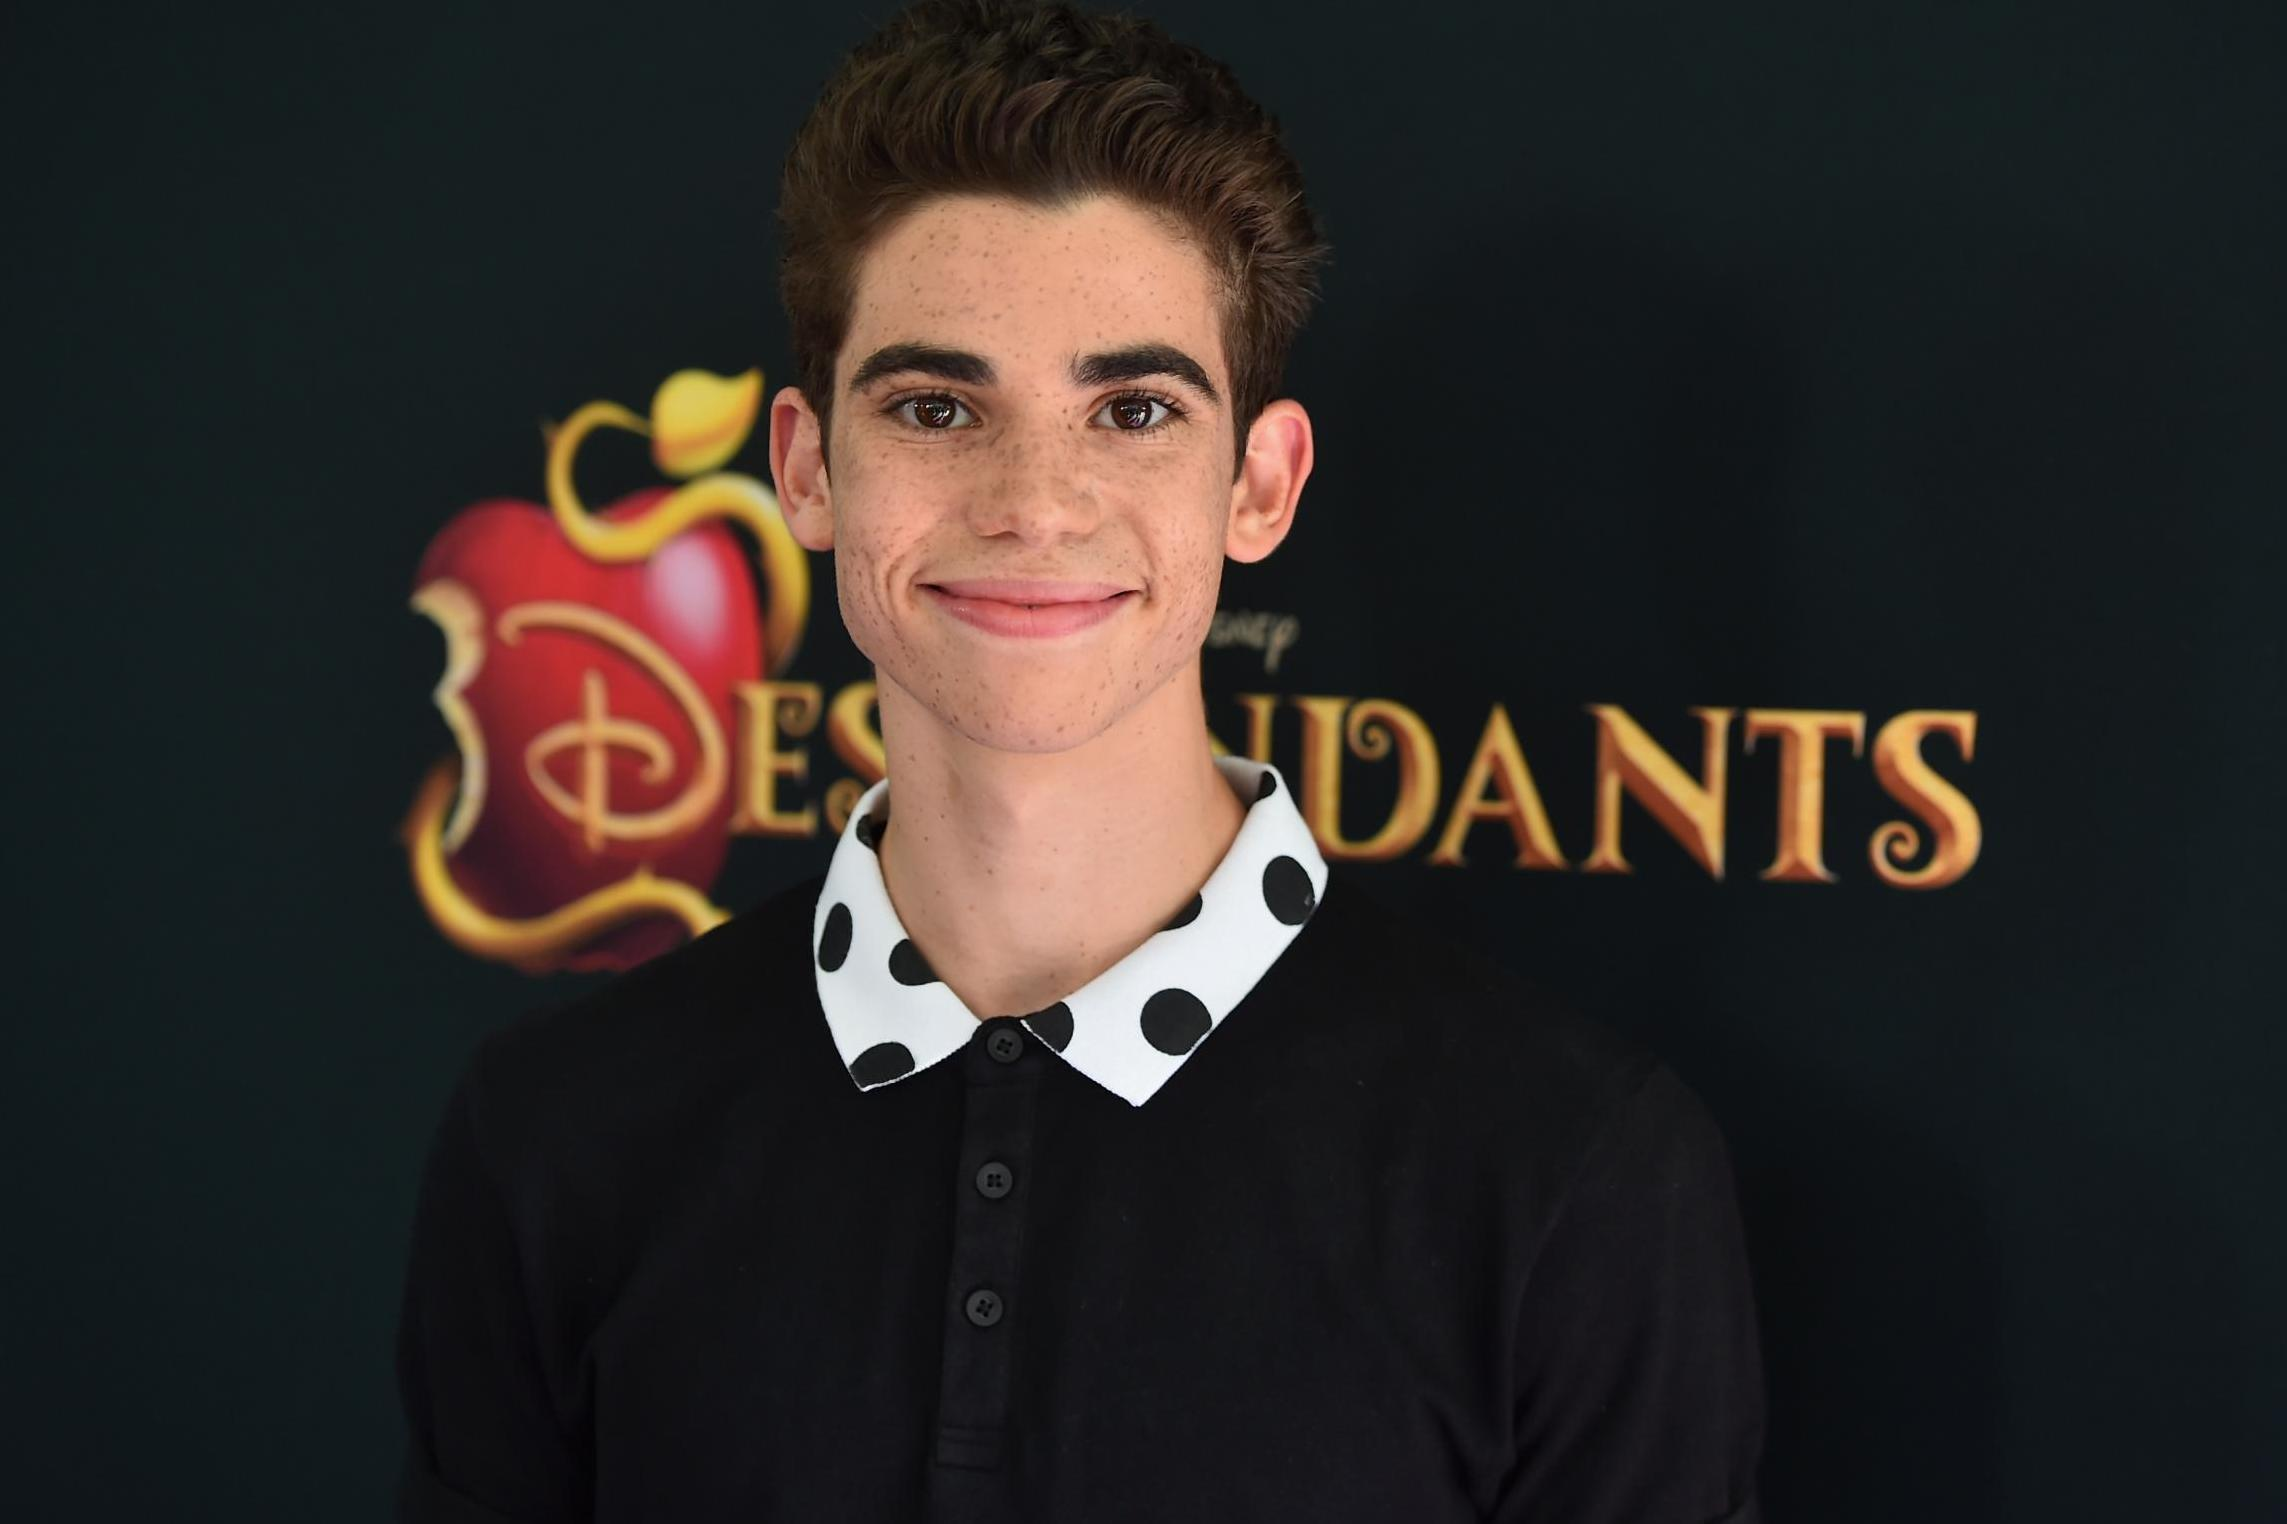 Cameron Boyce death: Disney star suffered from epilepsy which caused fatal seizure, family say